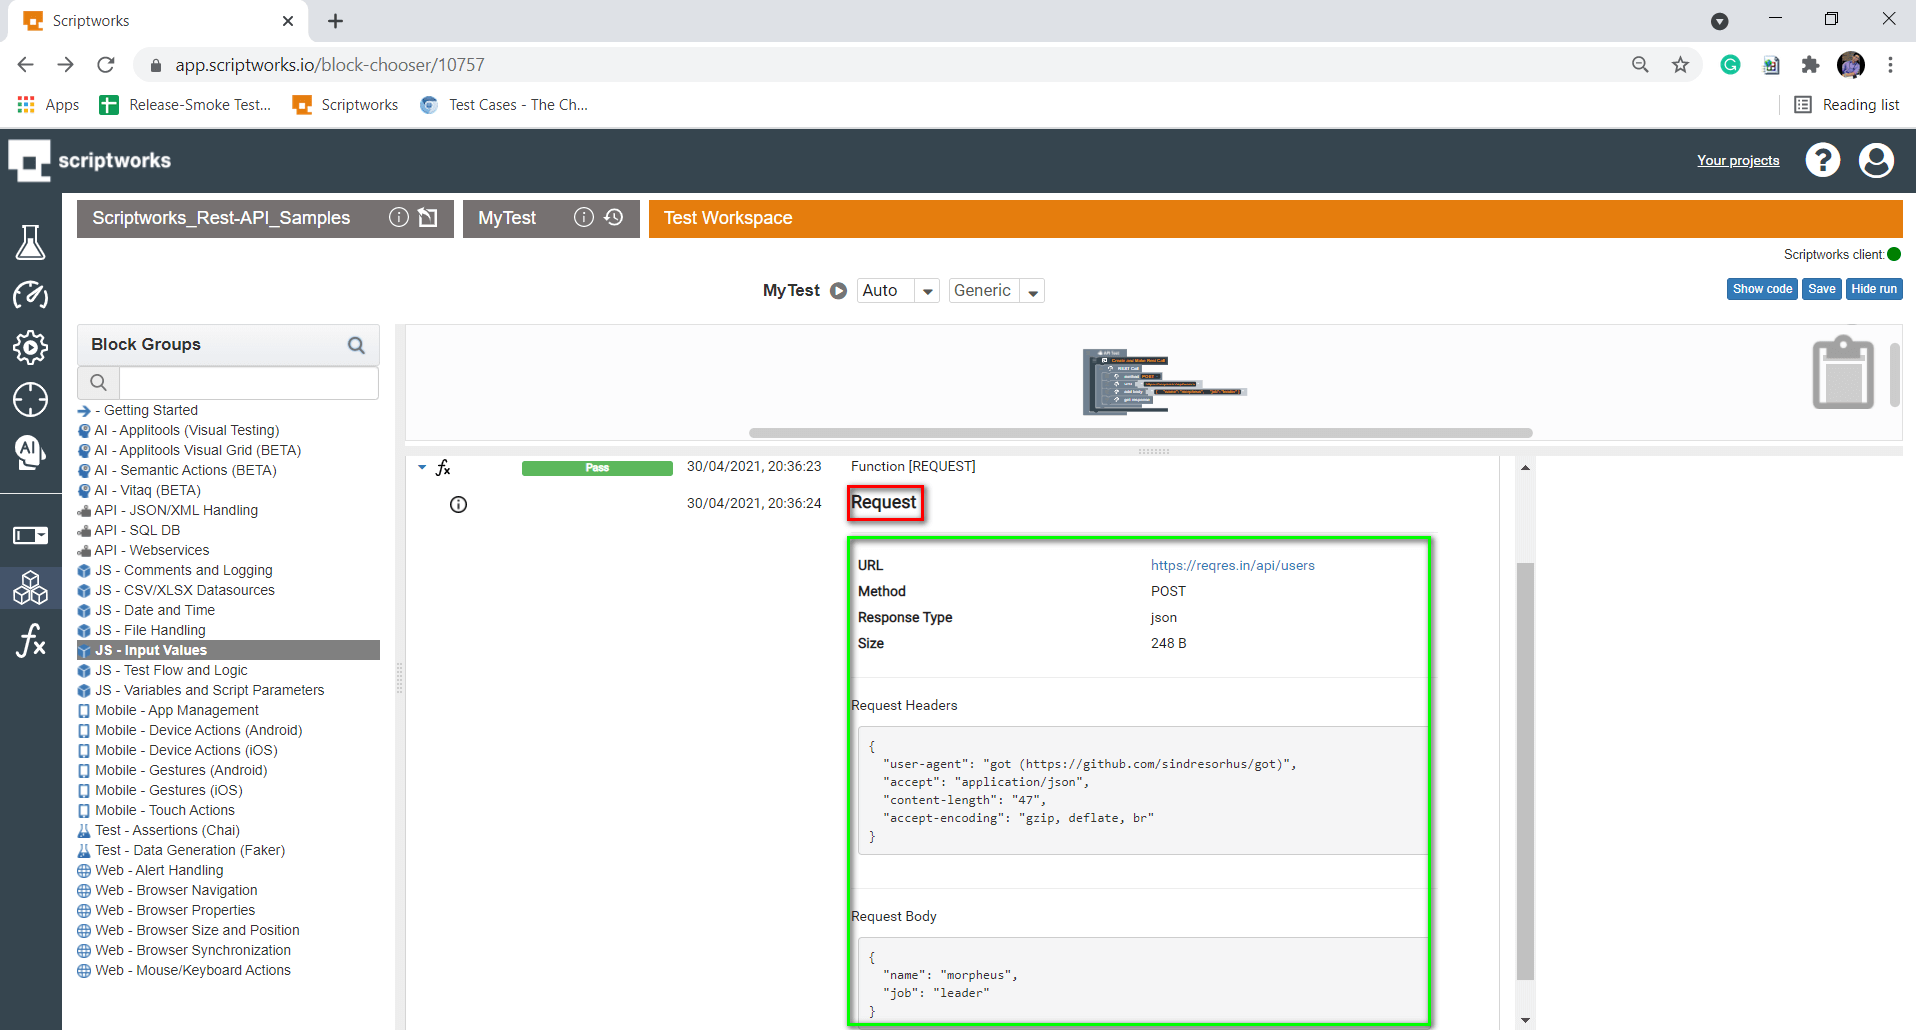 Request results with request headers